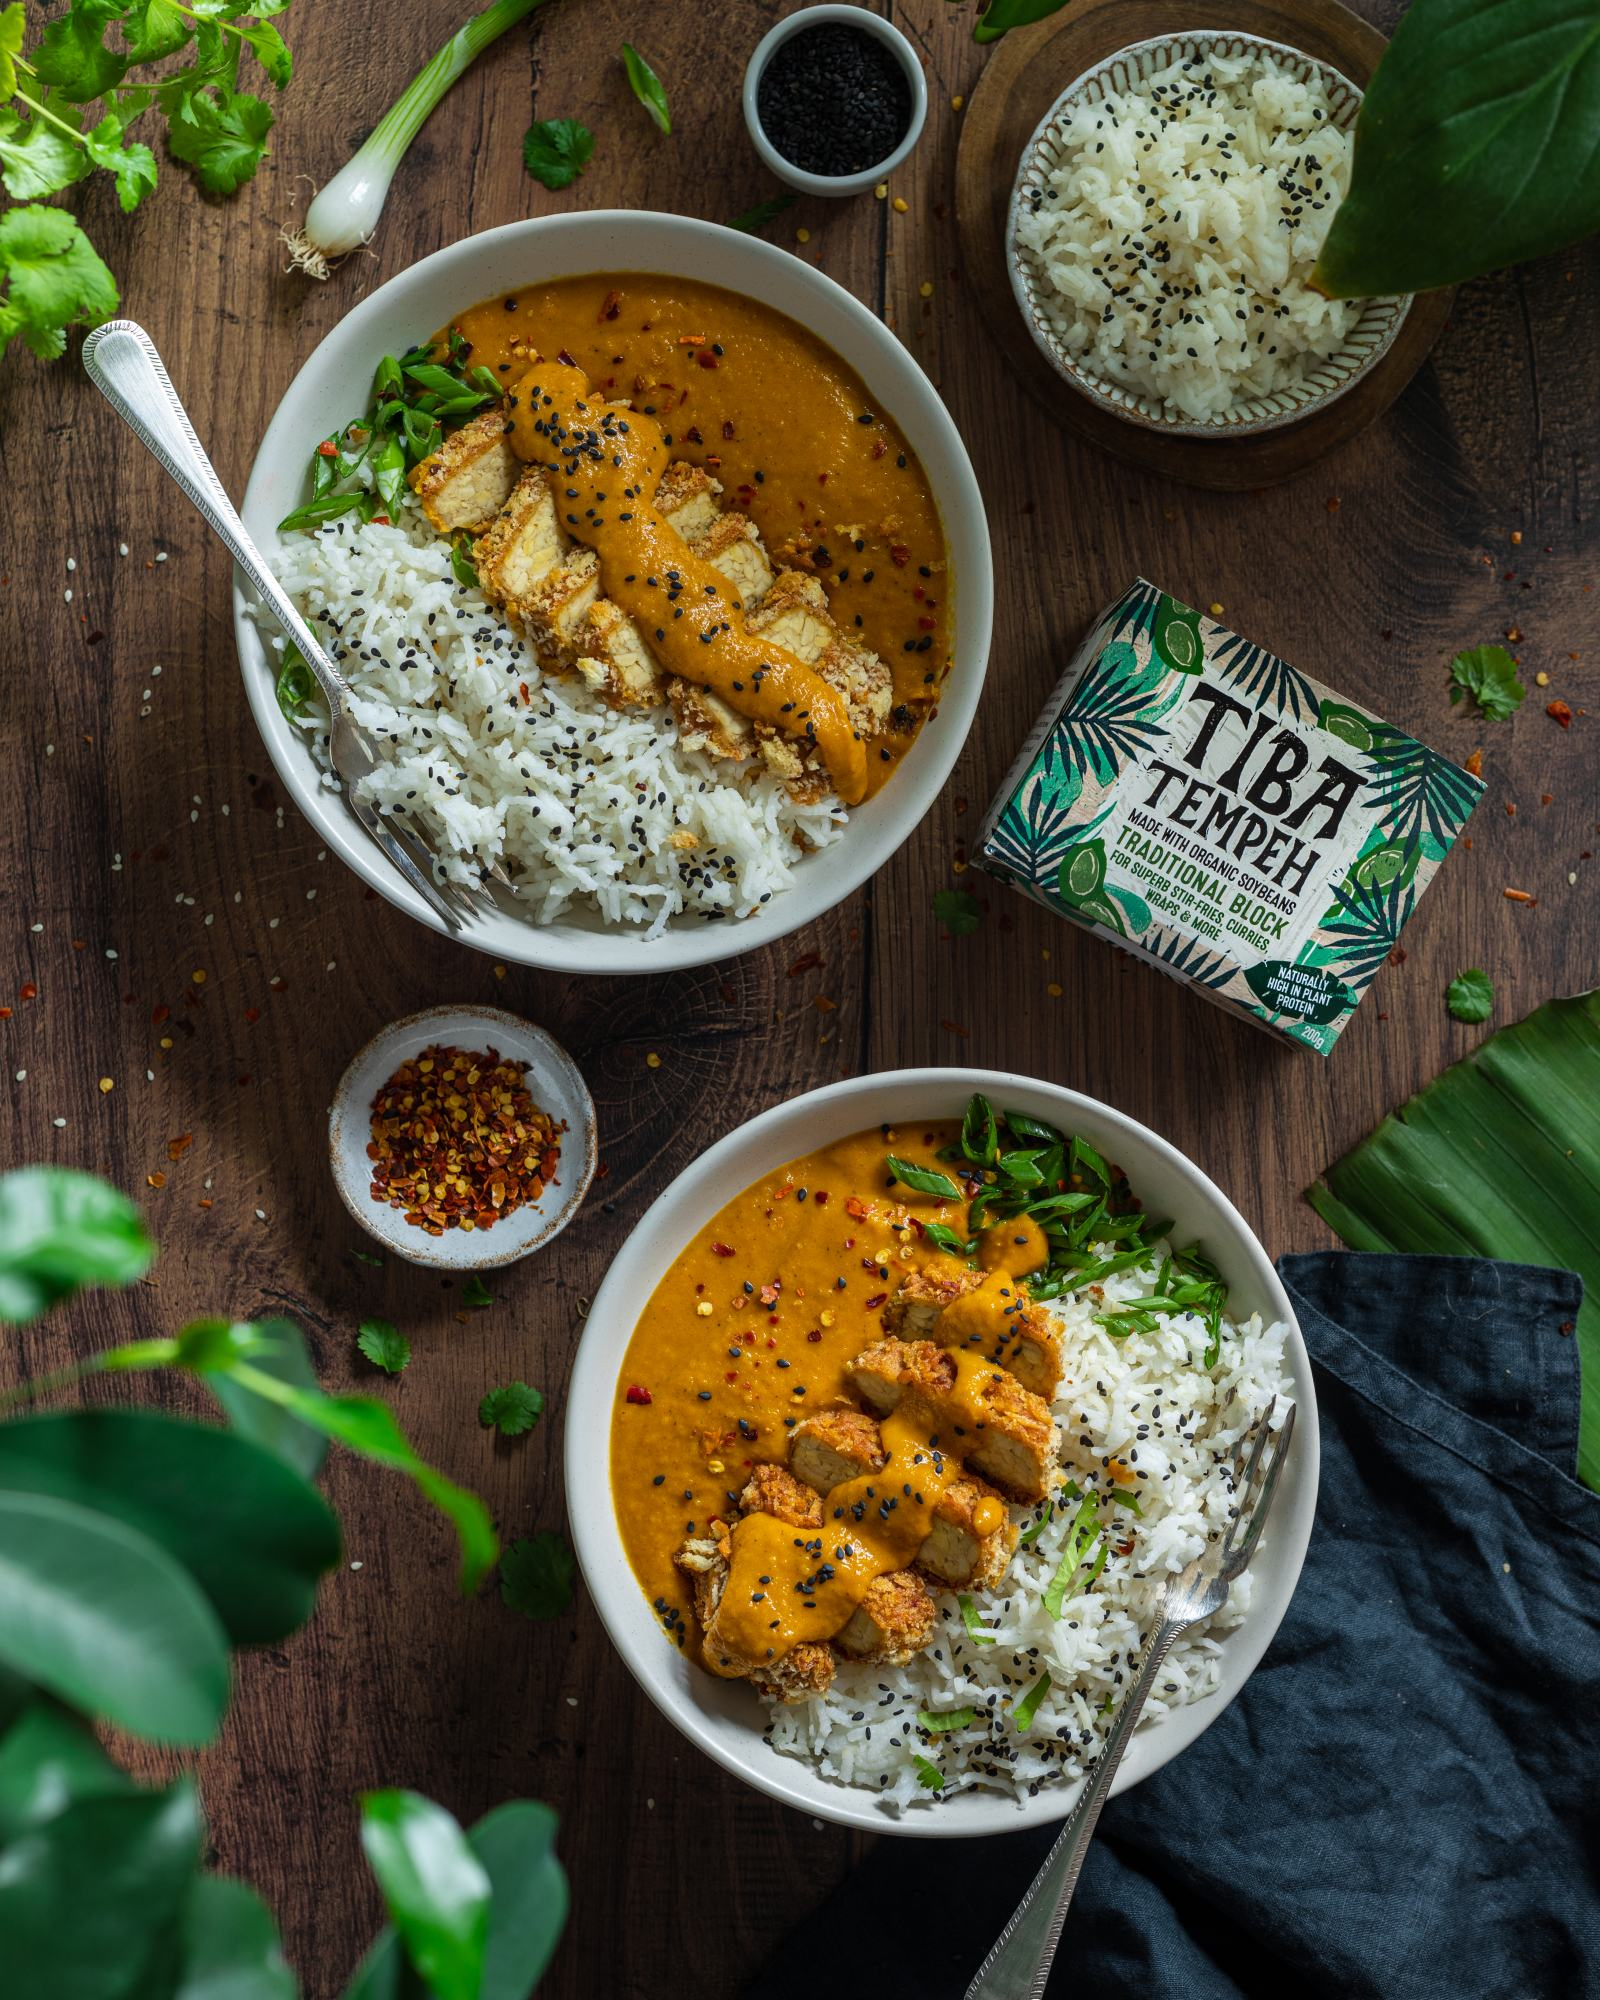 Vegan Katsu Curry with Tempeh - two bowls on a dark backdrop, rice and katsu sauce on each bowl with a fork, sliced crunchy panko coated tempeh on top with a drizzle of sauce, tiba tempeh packaging placed besides the bowls